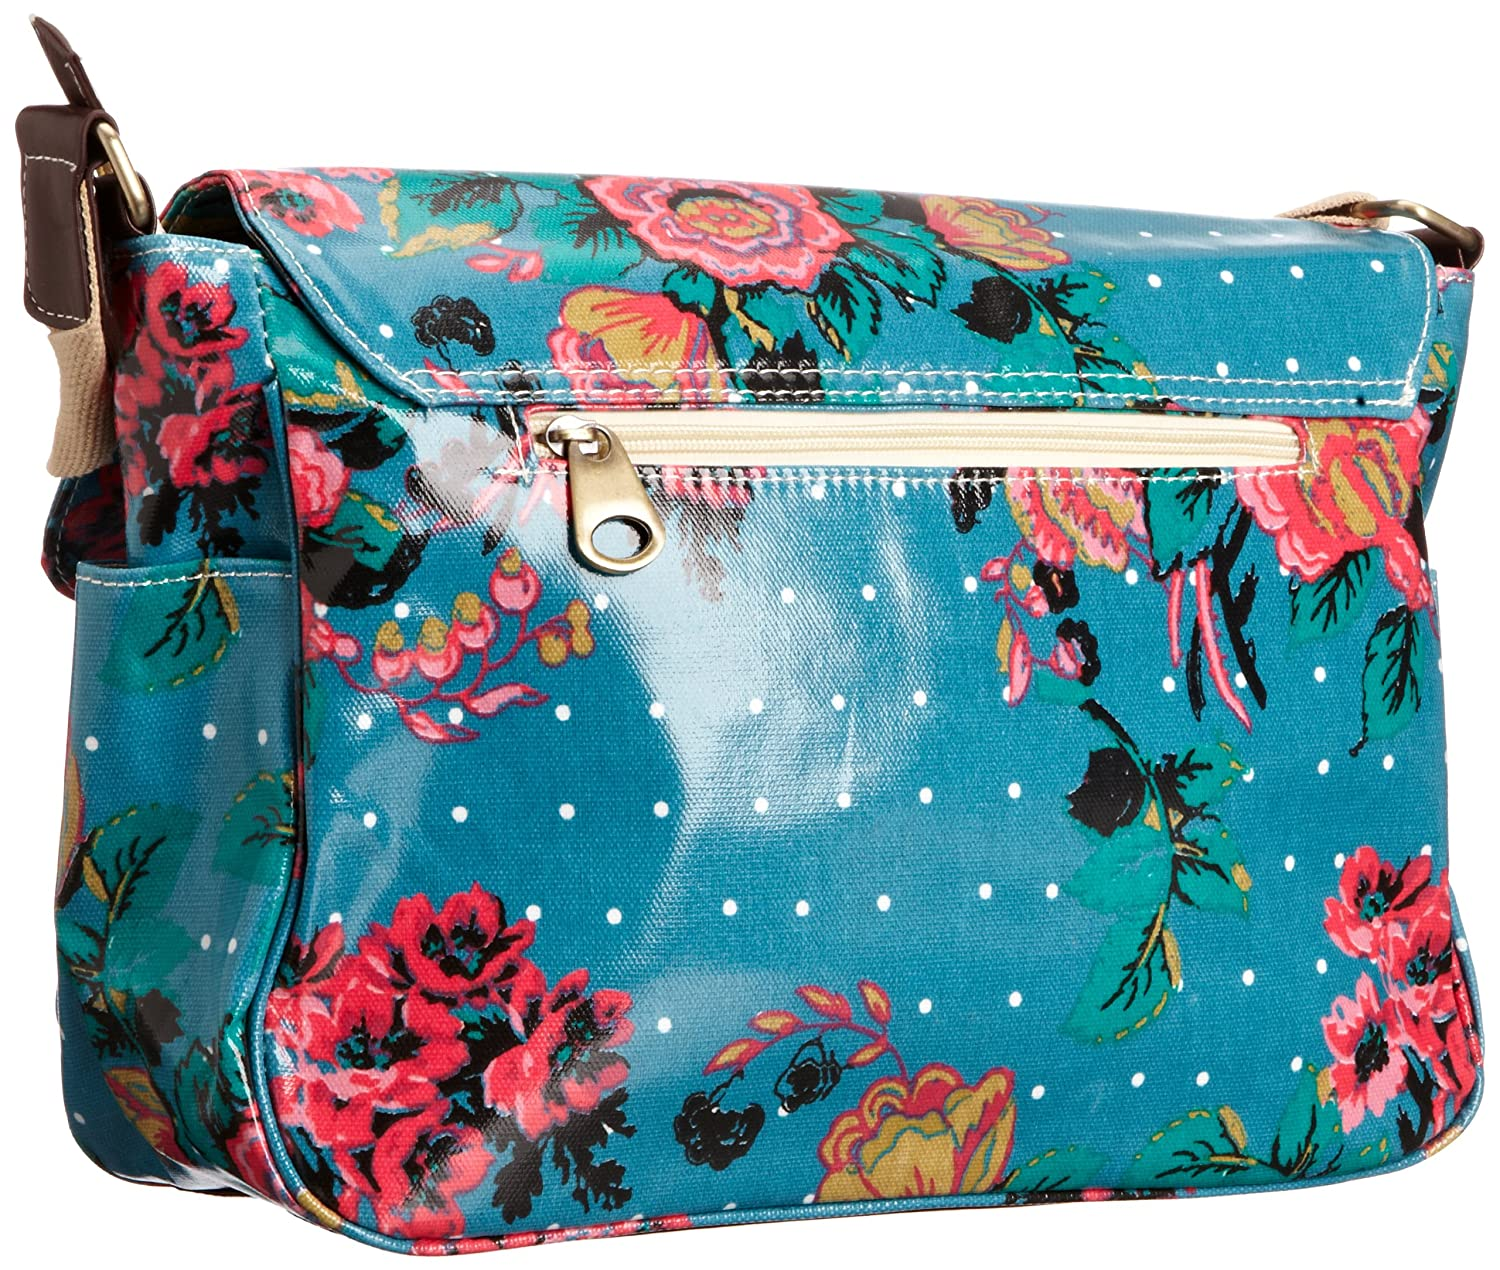 SwankySwans Perry Floral & Polka Dot Laminate, Girls' Satchel, Green, One  Size: Amazon.co.uk: Shoes & Bags